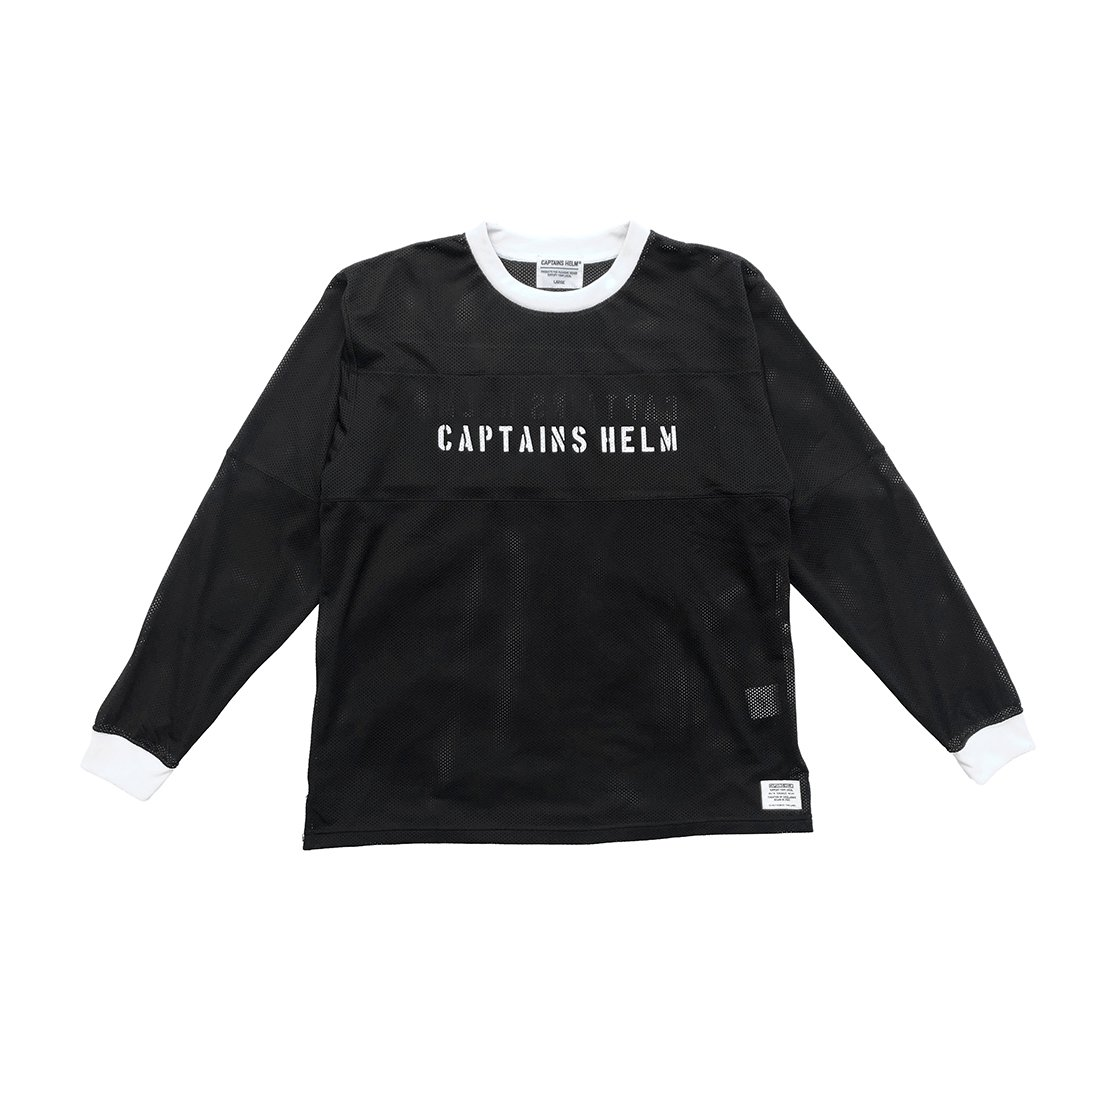 CAPTAINS HELM #2TONE MESH L/S TEE -CHT Limited Color